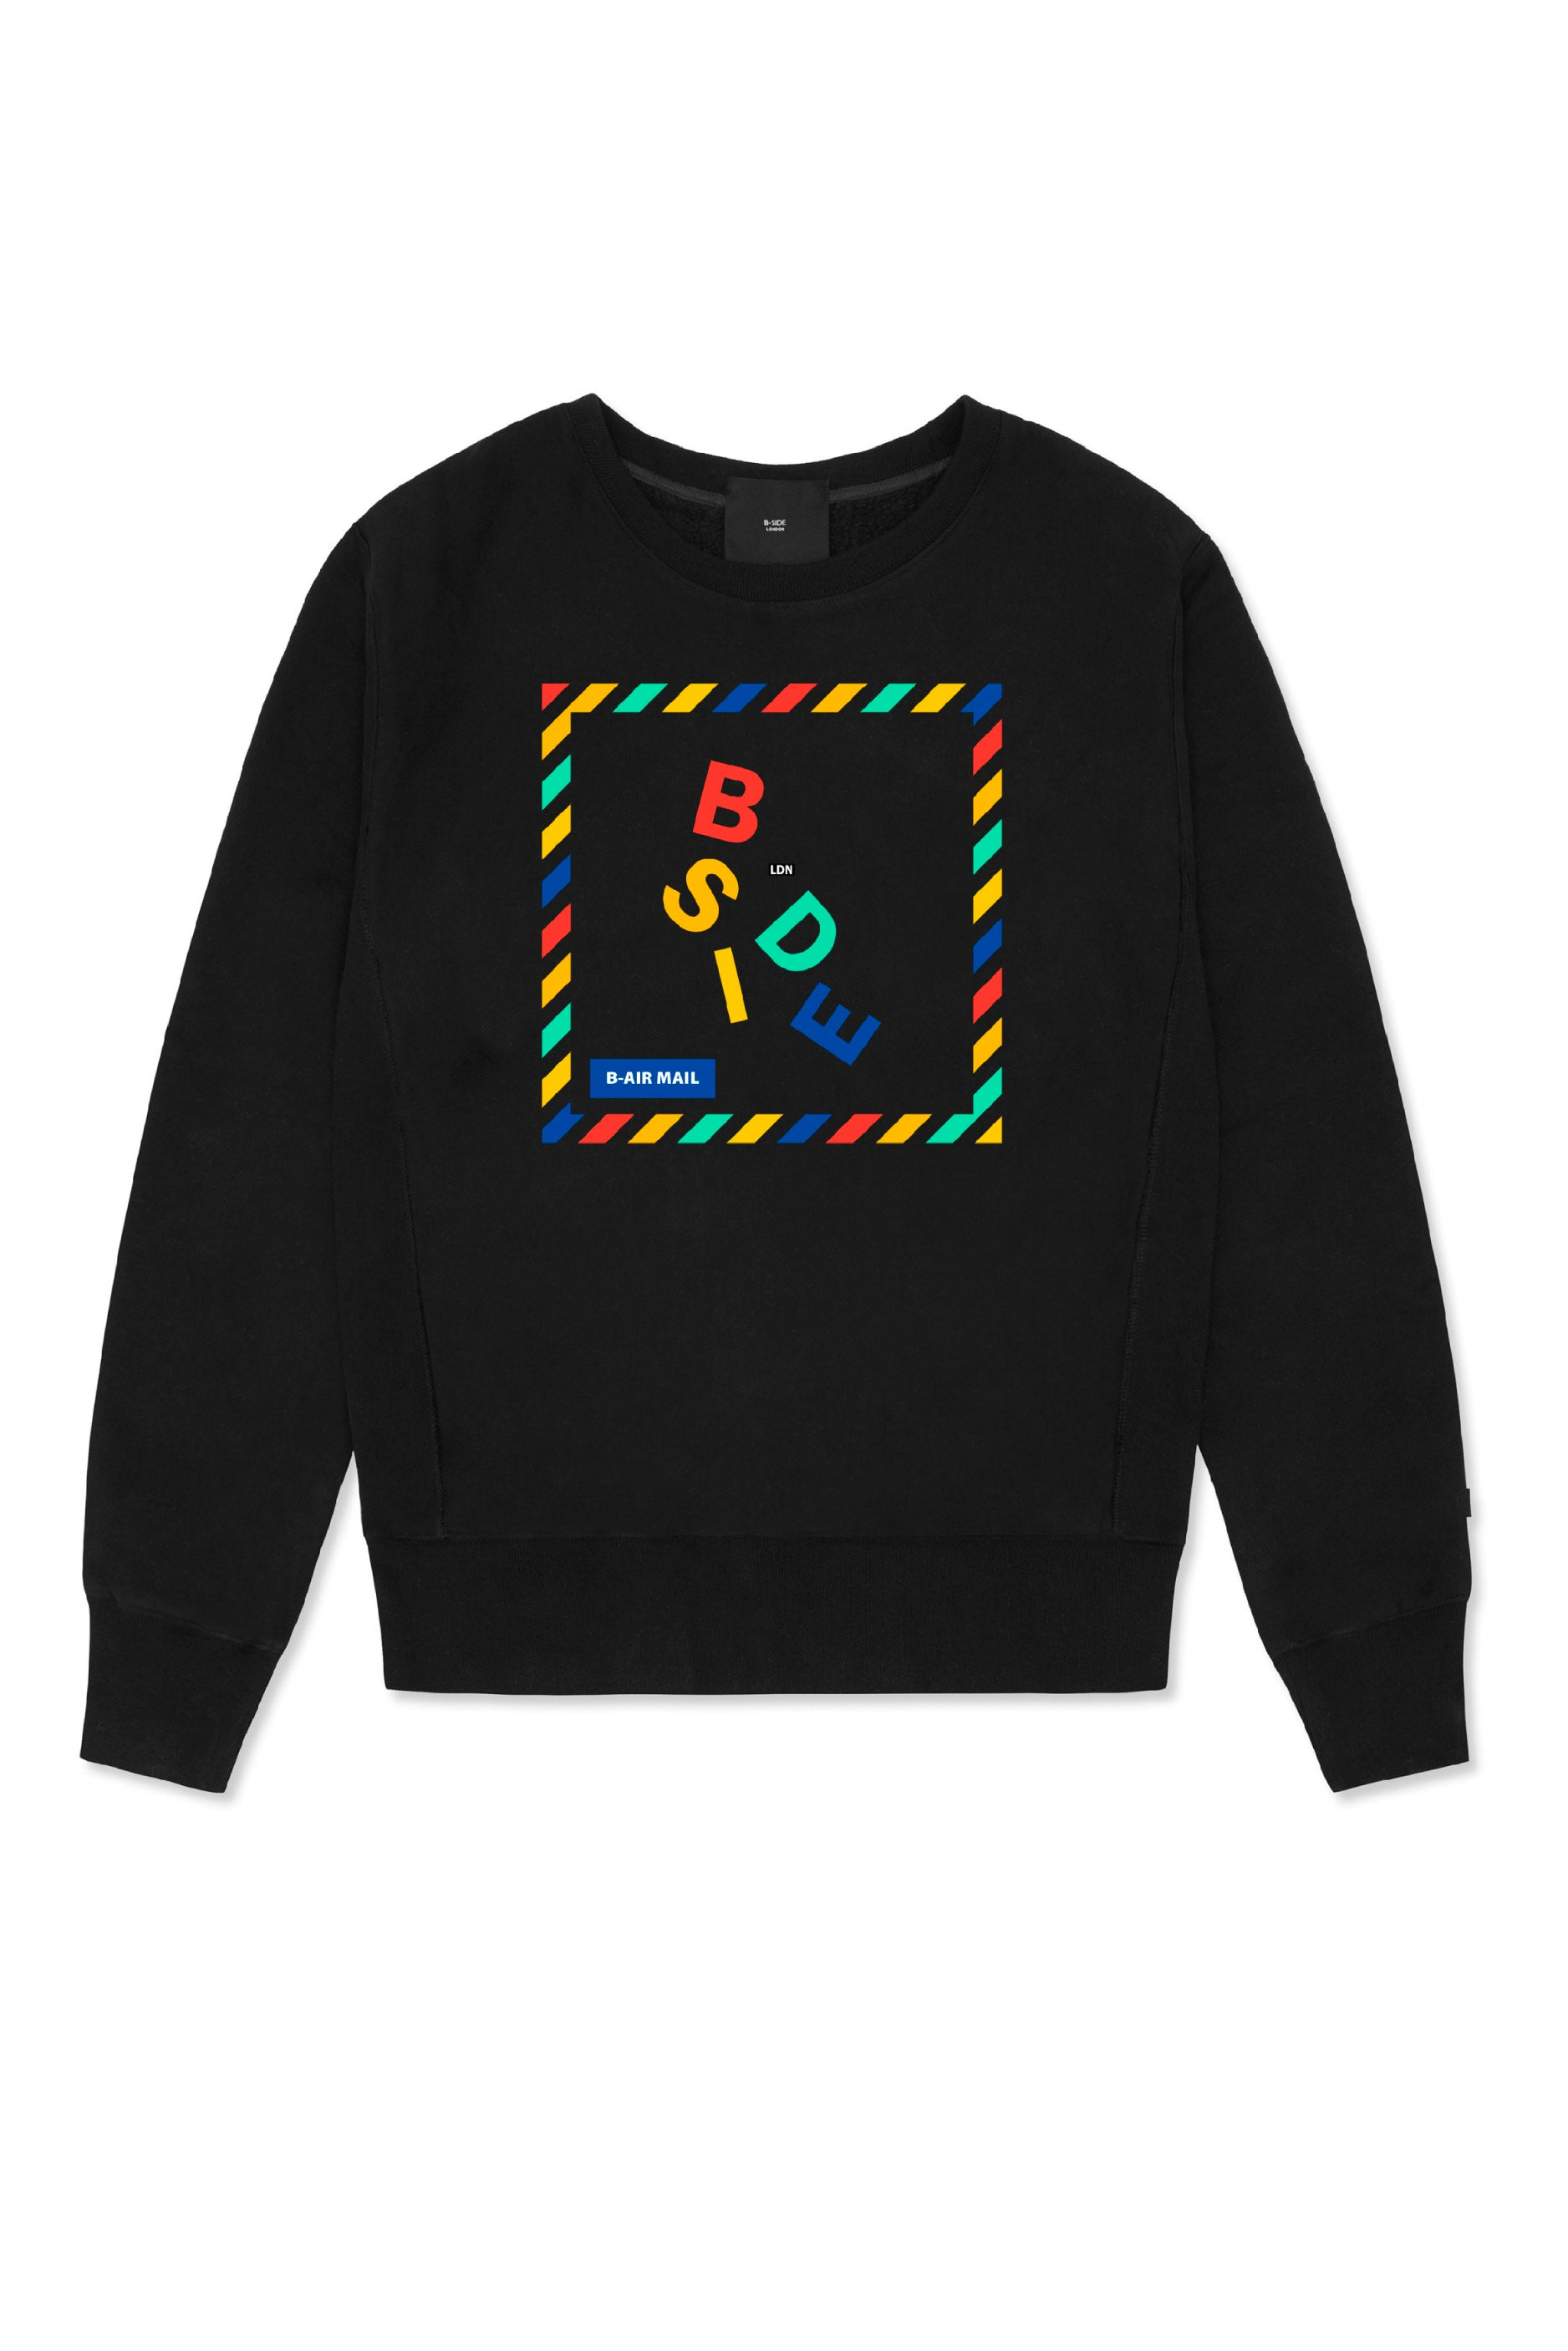 Black Sweatshirt - B-mail Print